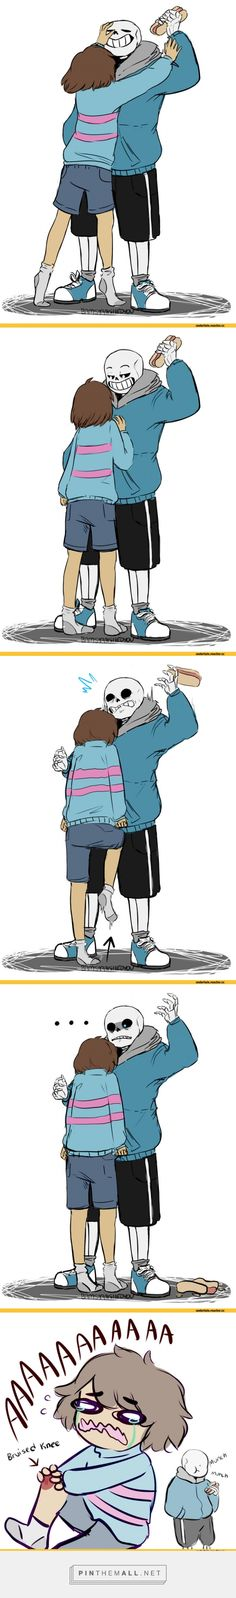 Undertale, Frisk and Sans